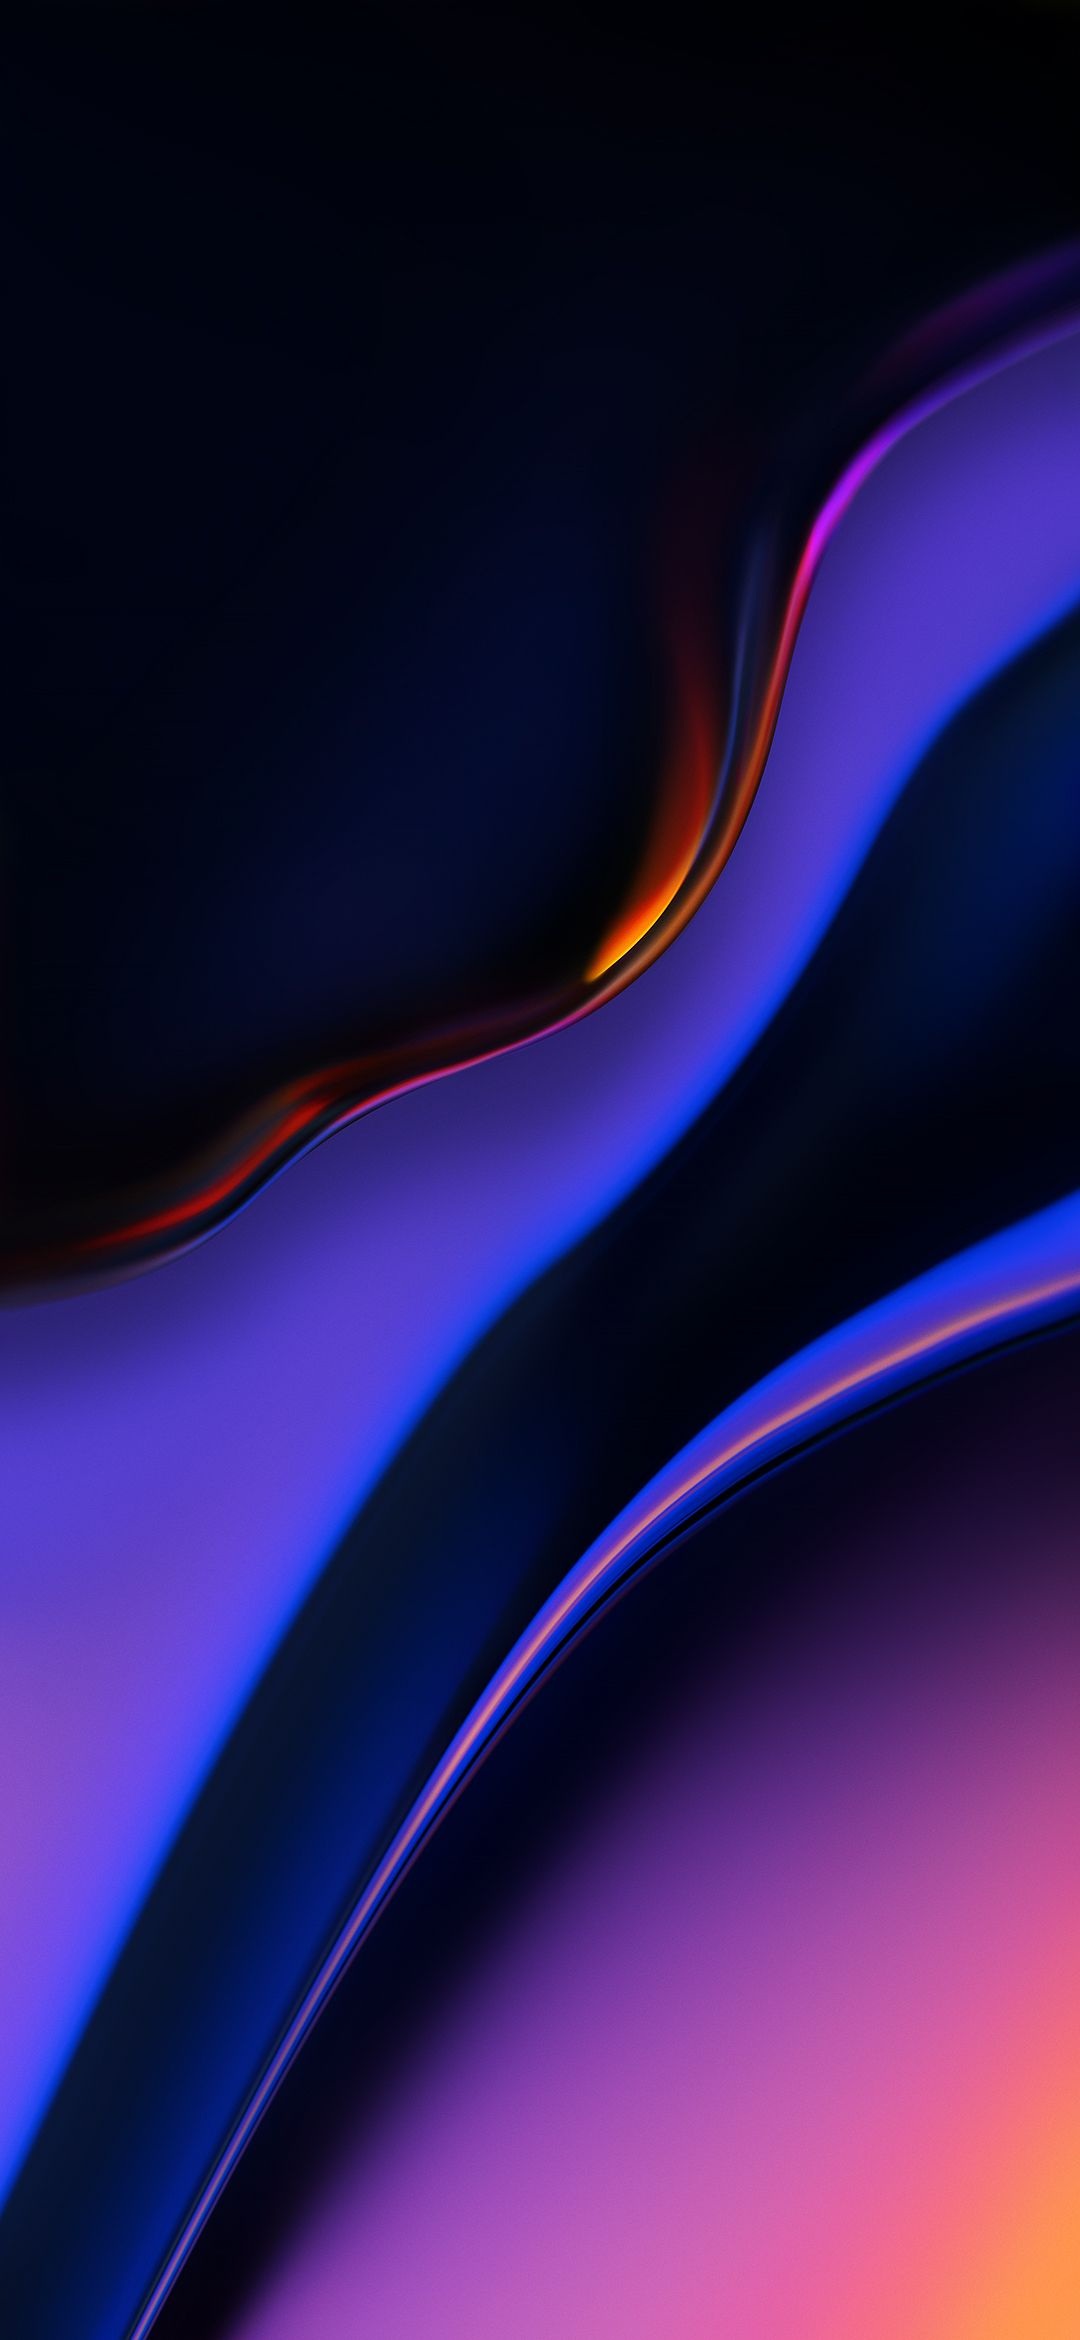 Download Oneplus 6t Stock Wallpaper Fhd 4k Wallpaper For